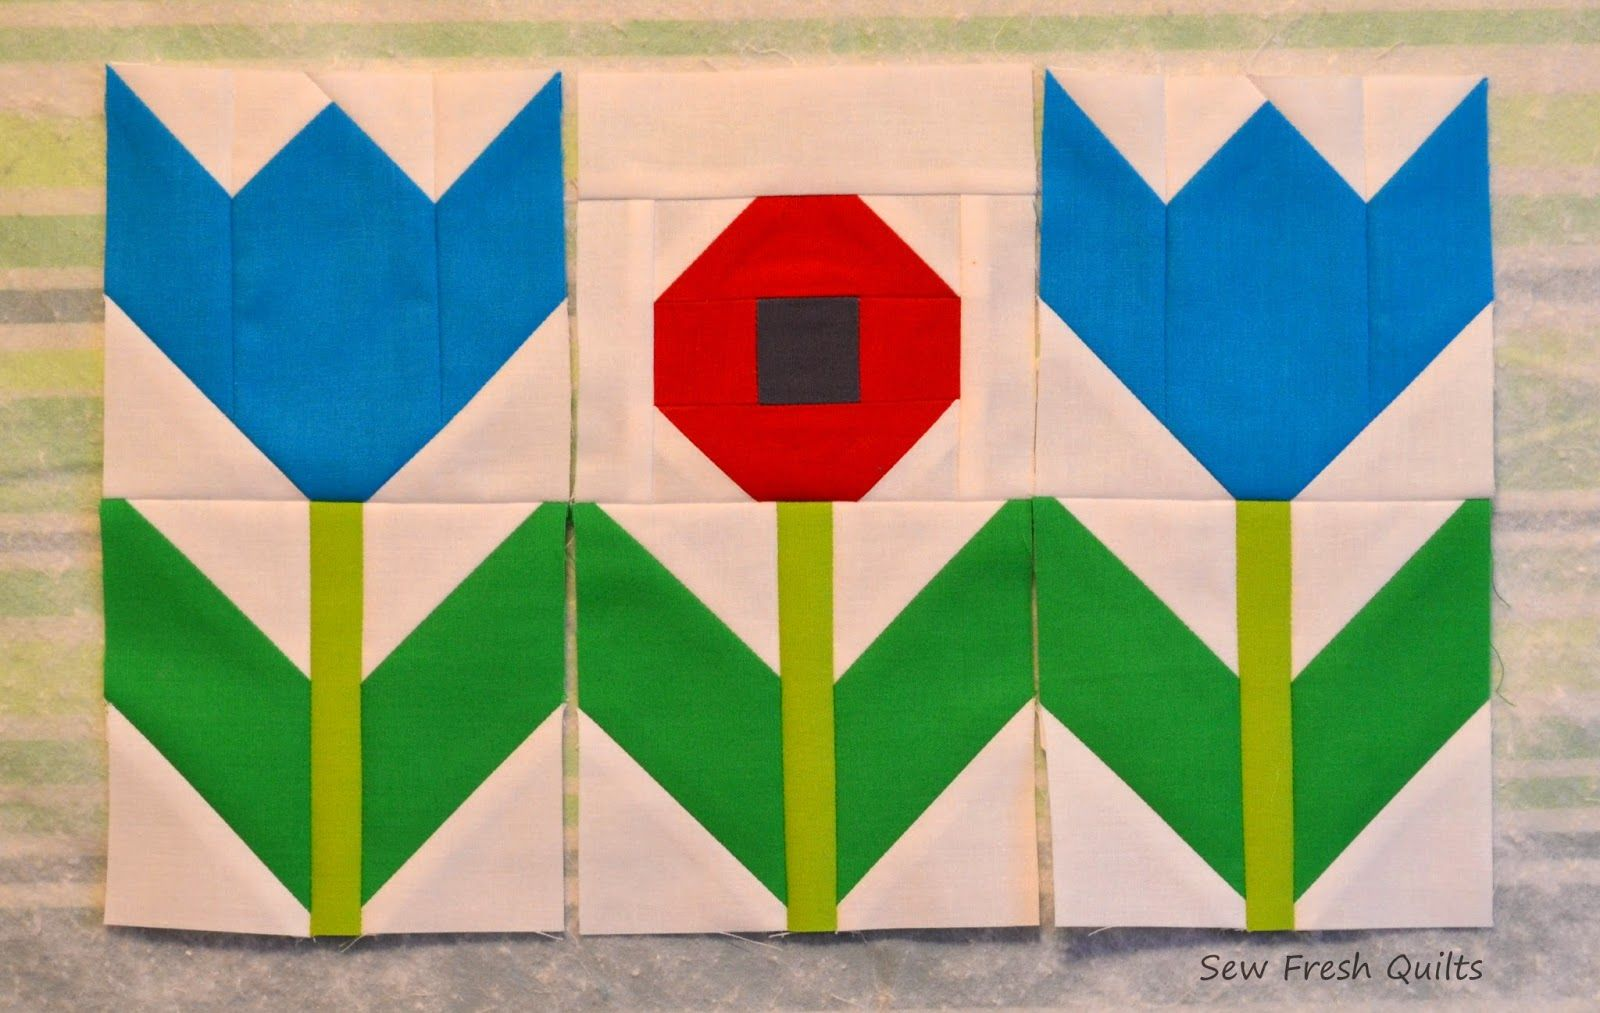 Sew Fresh Quilts: Elephant Parade - Week 6 - Flowers